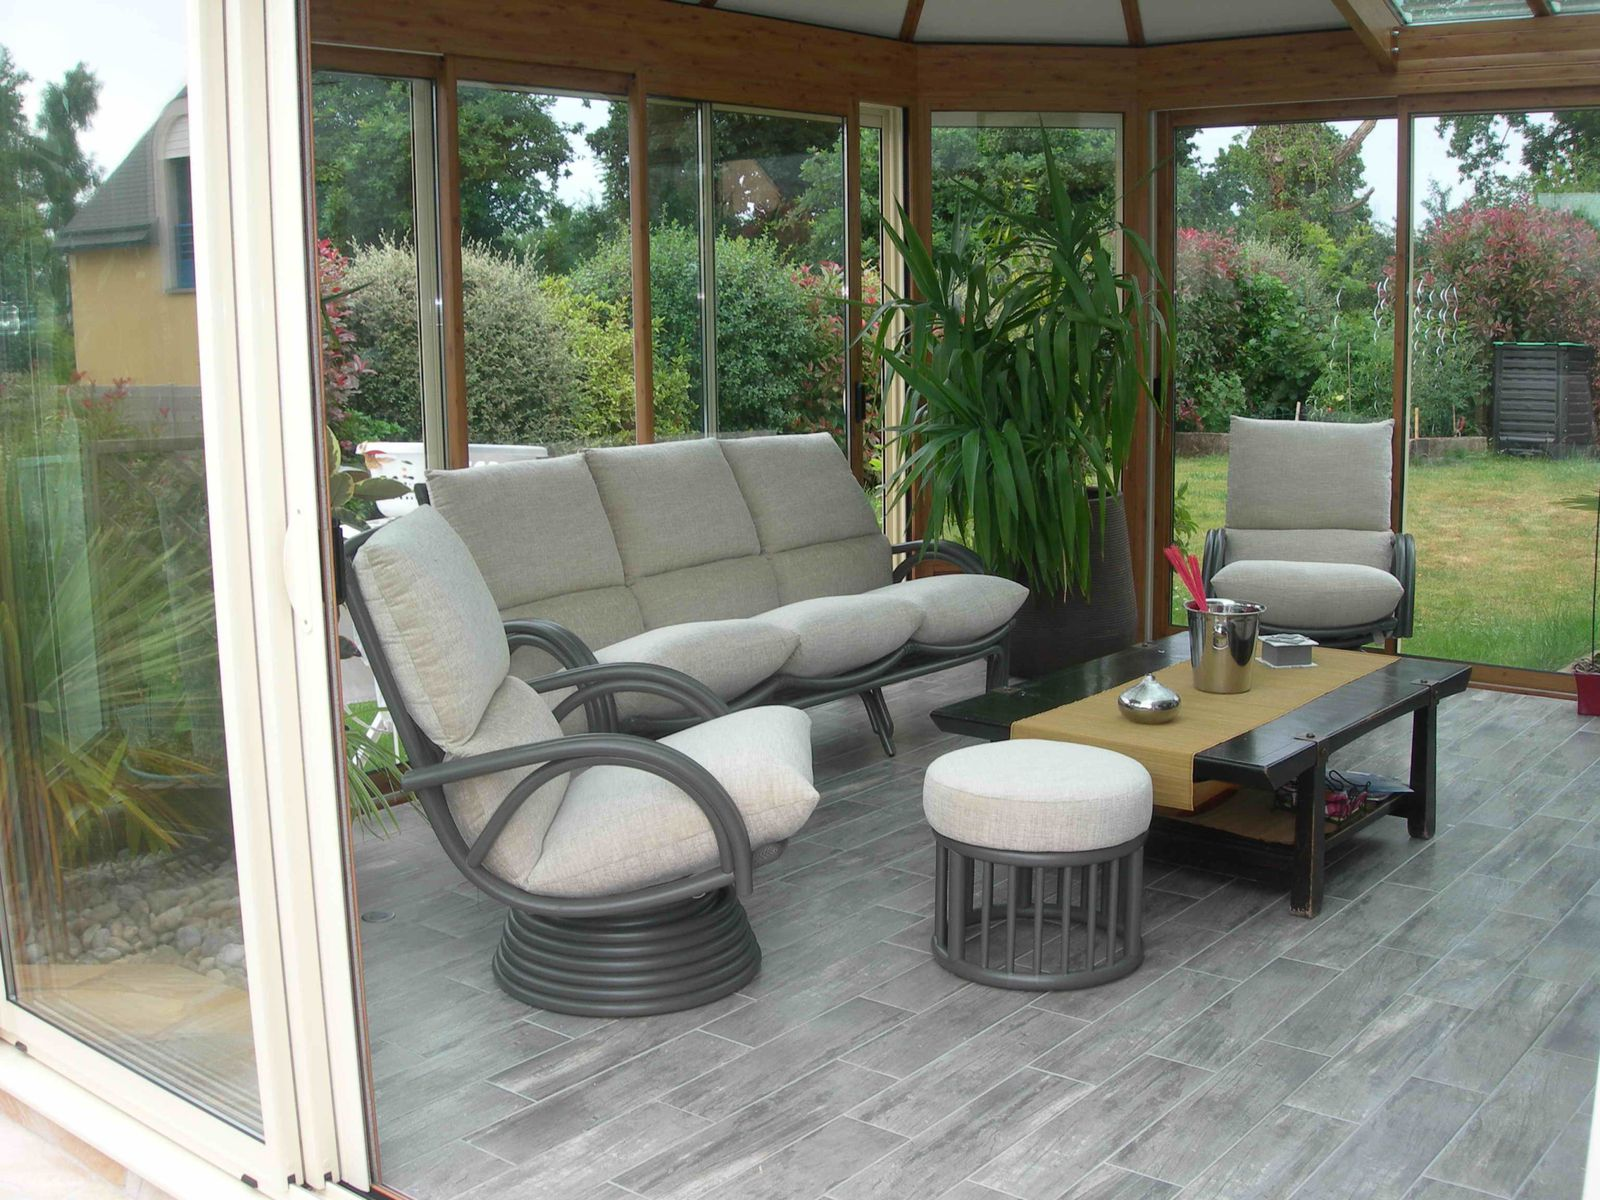 Album Meubles De Veranda Exodia Home Design Tables Ceramique  # Modele De Meuble Pour Salon